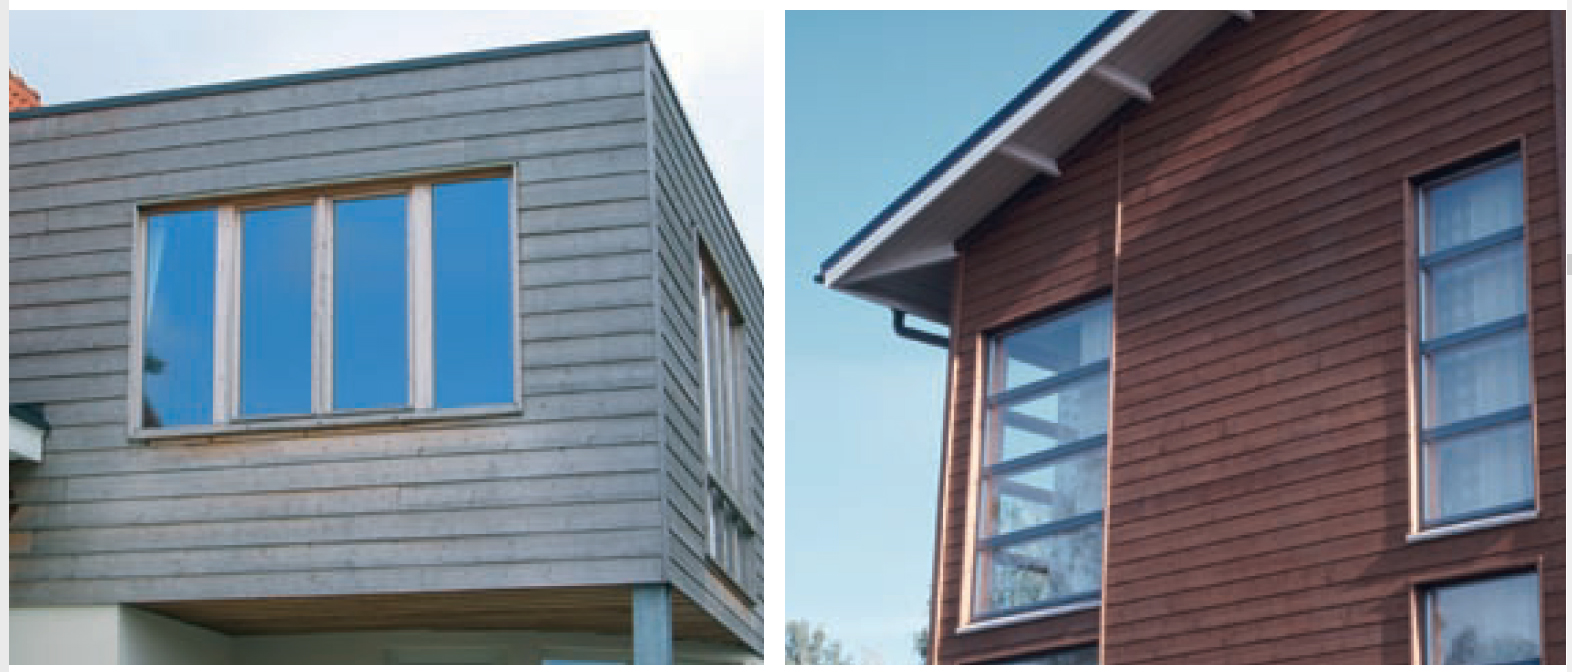 ThermoWood cladding after three years weather exposure with and without surface coatings